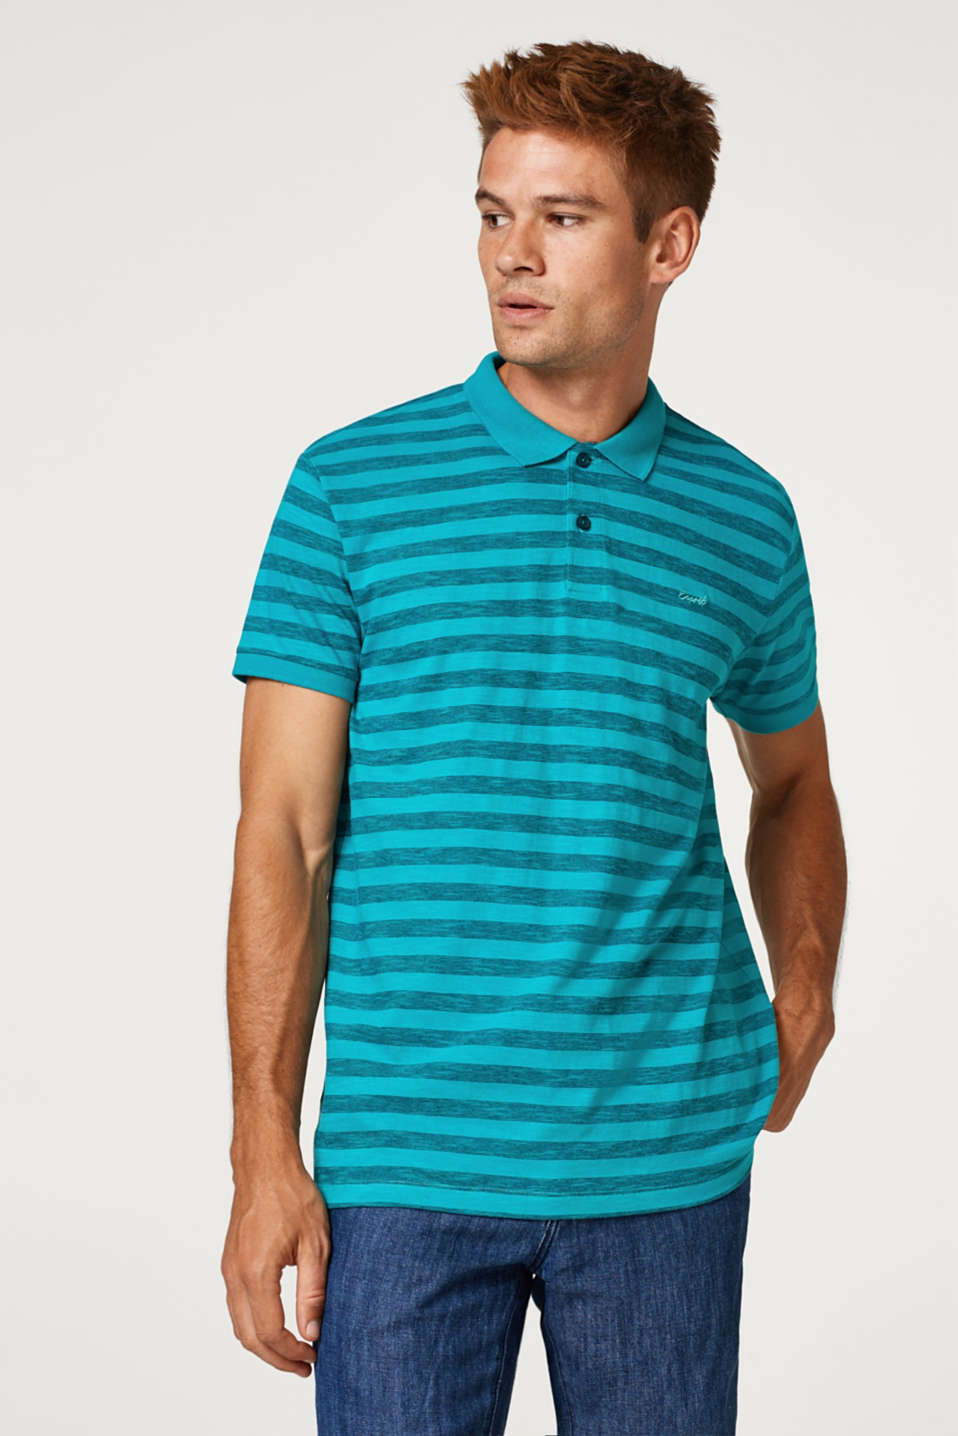 Esprit - Striped jersey polo shirt in blended cotton